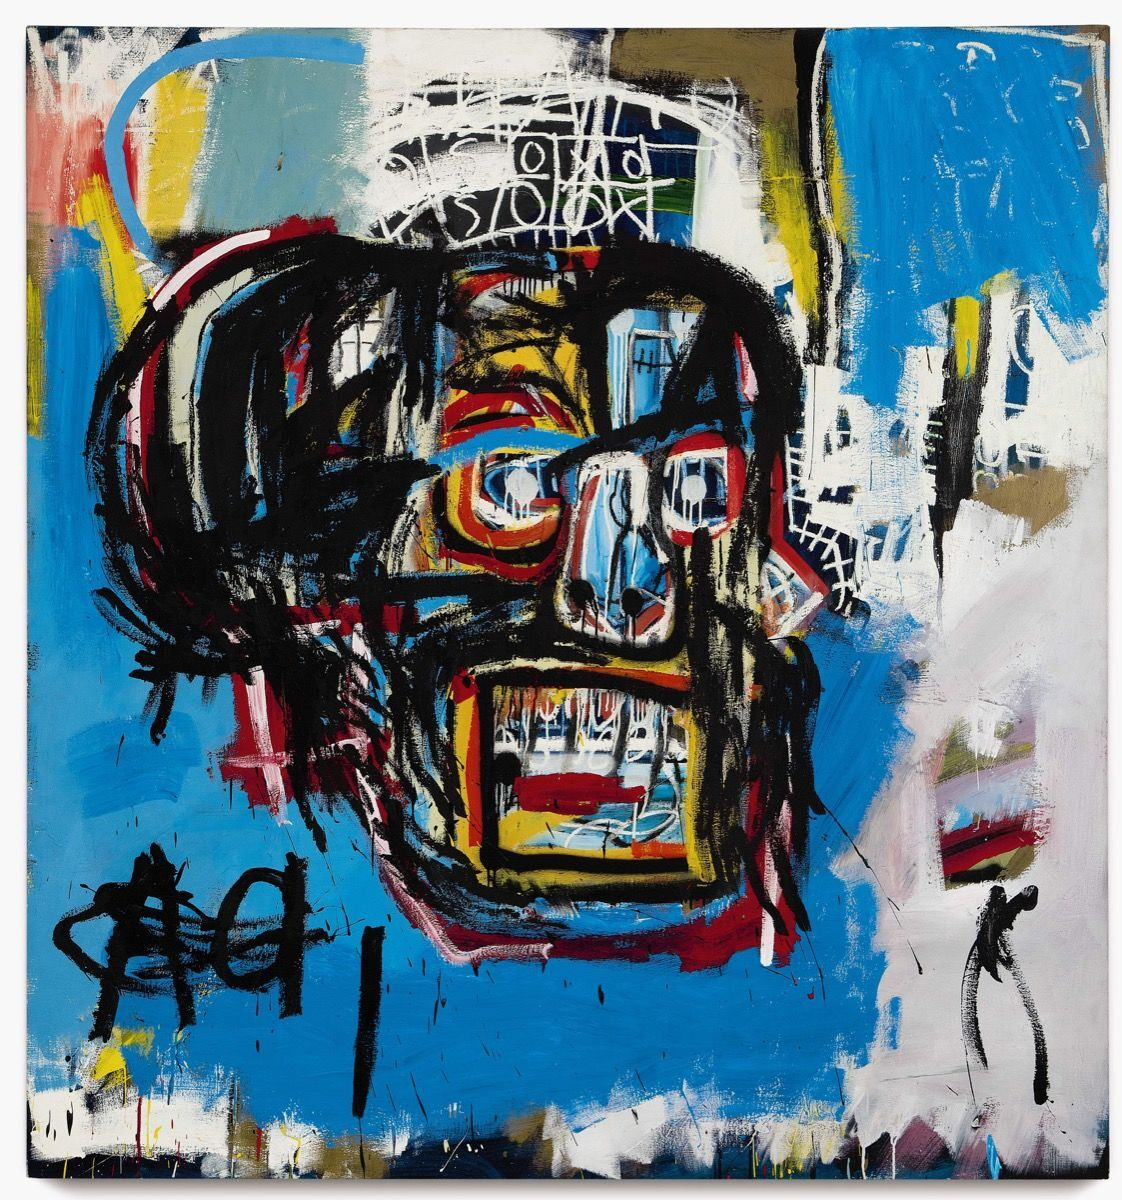 Jean-Michel Basquiat ,Untitled, 1982. Courtesy of Sotheby's.